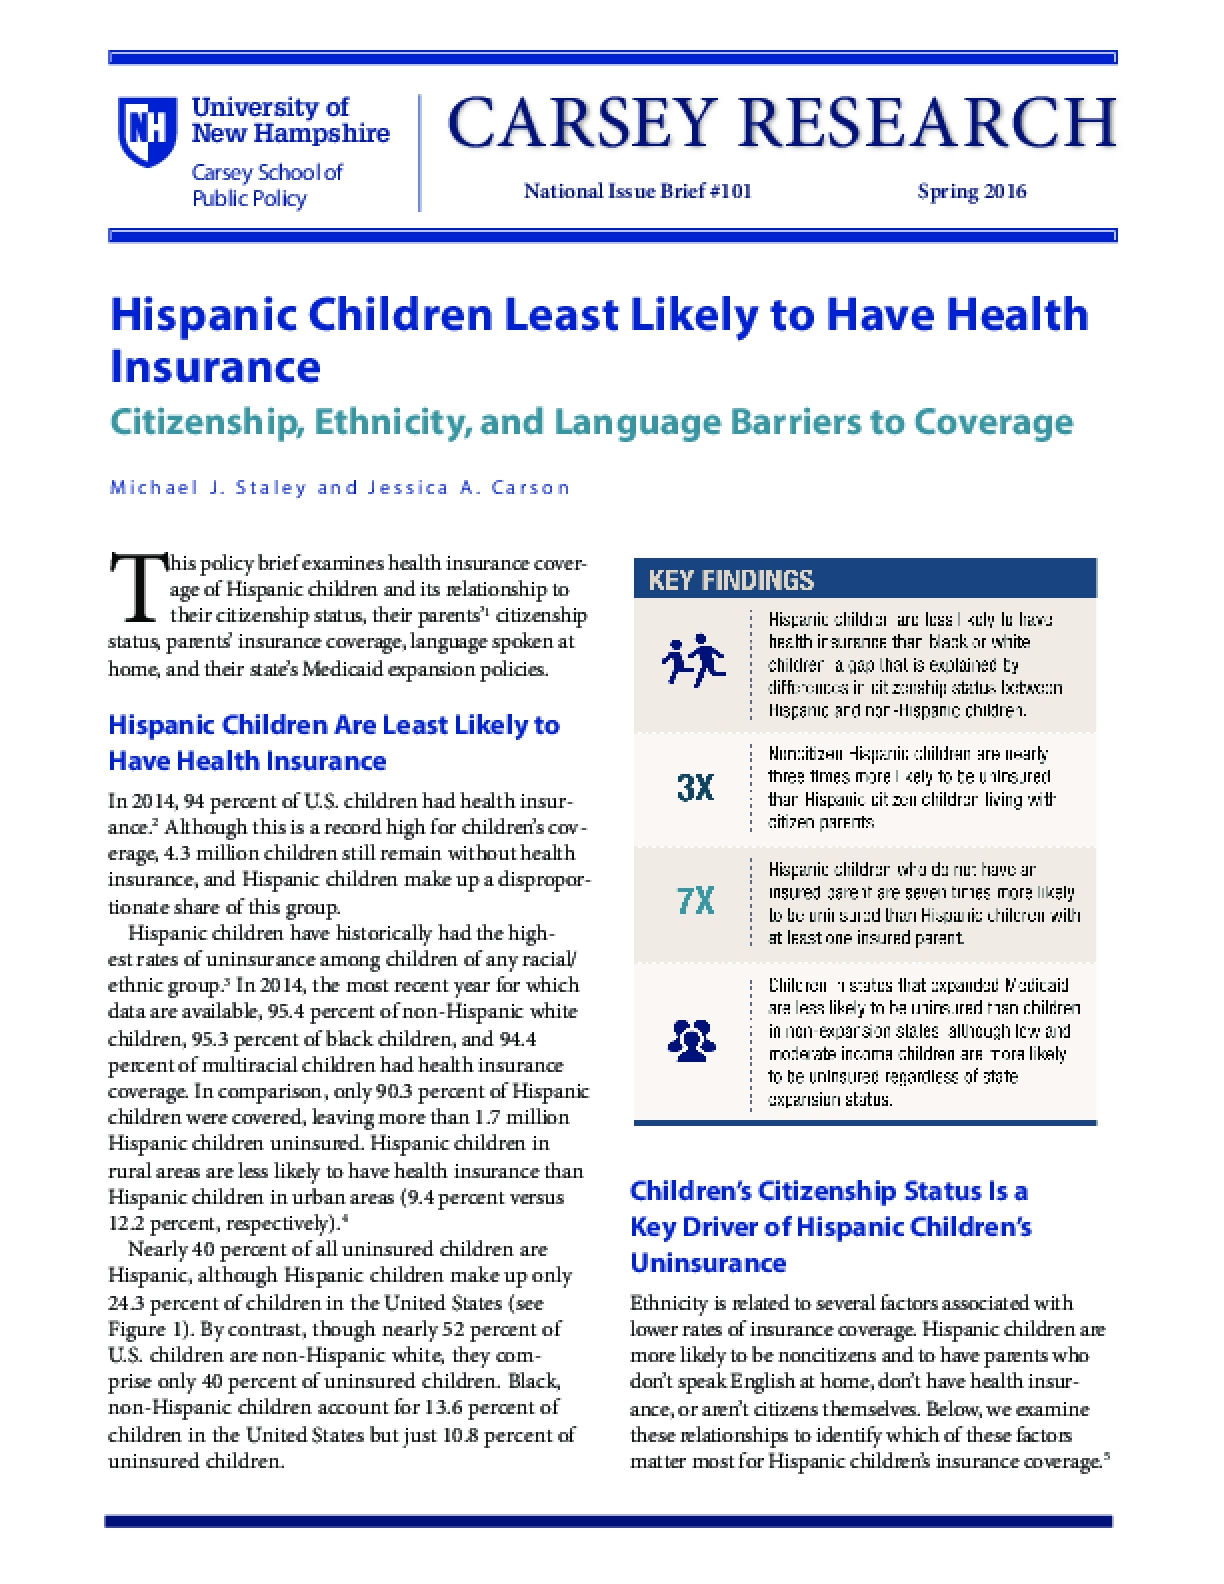 Hispanic Children Least Likely to Have Health Insurance